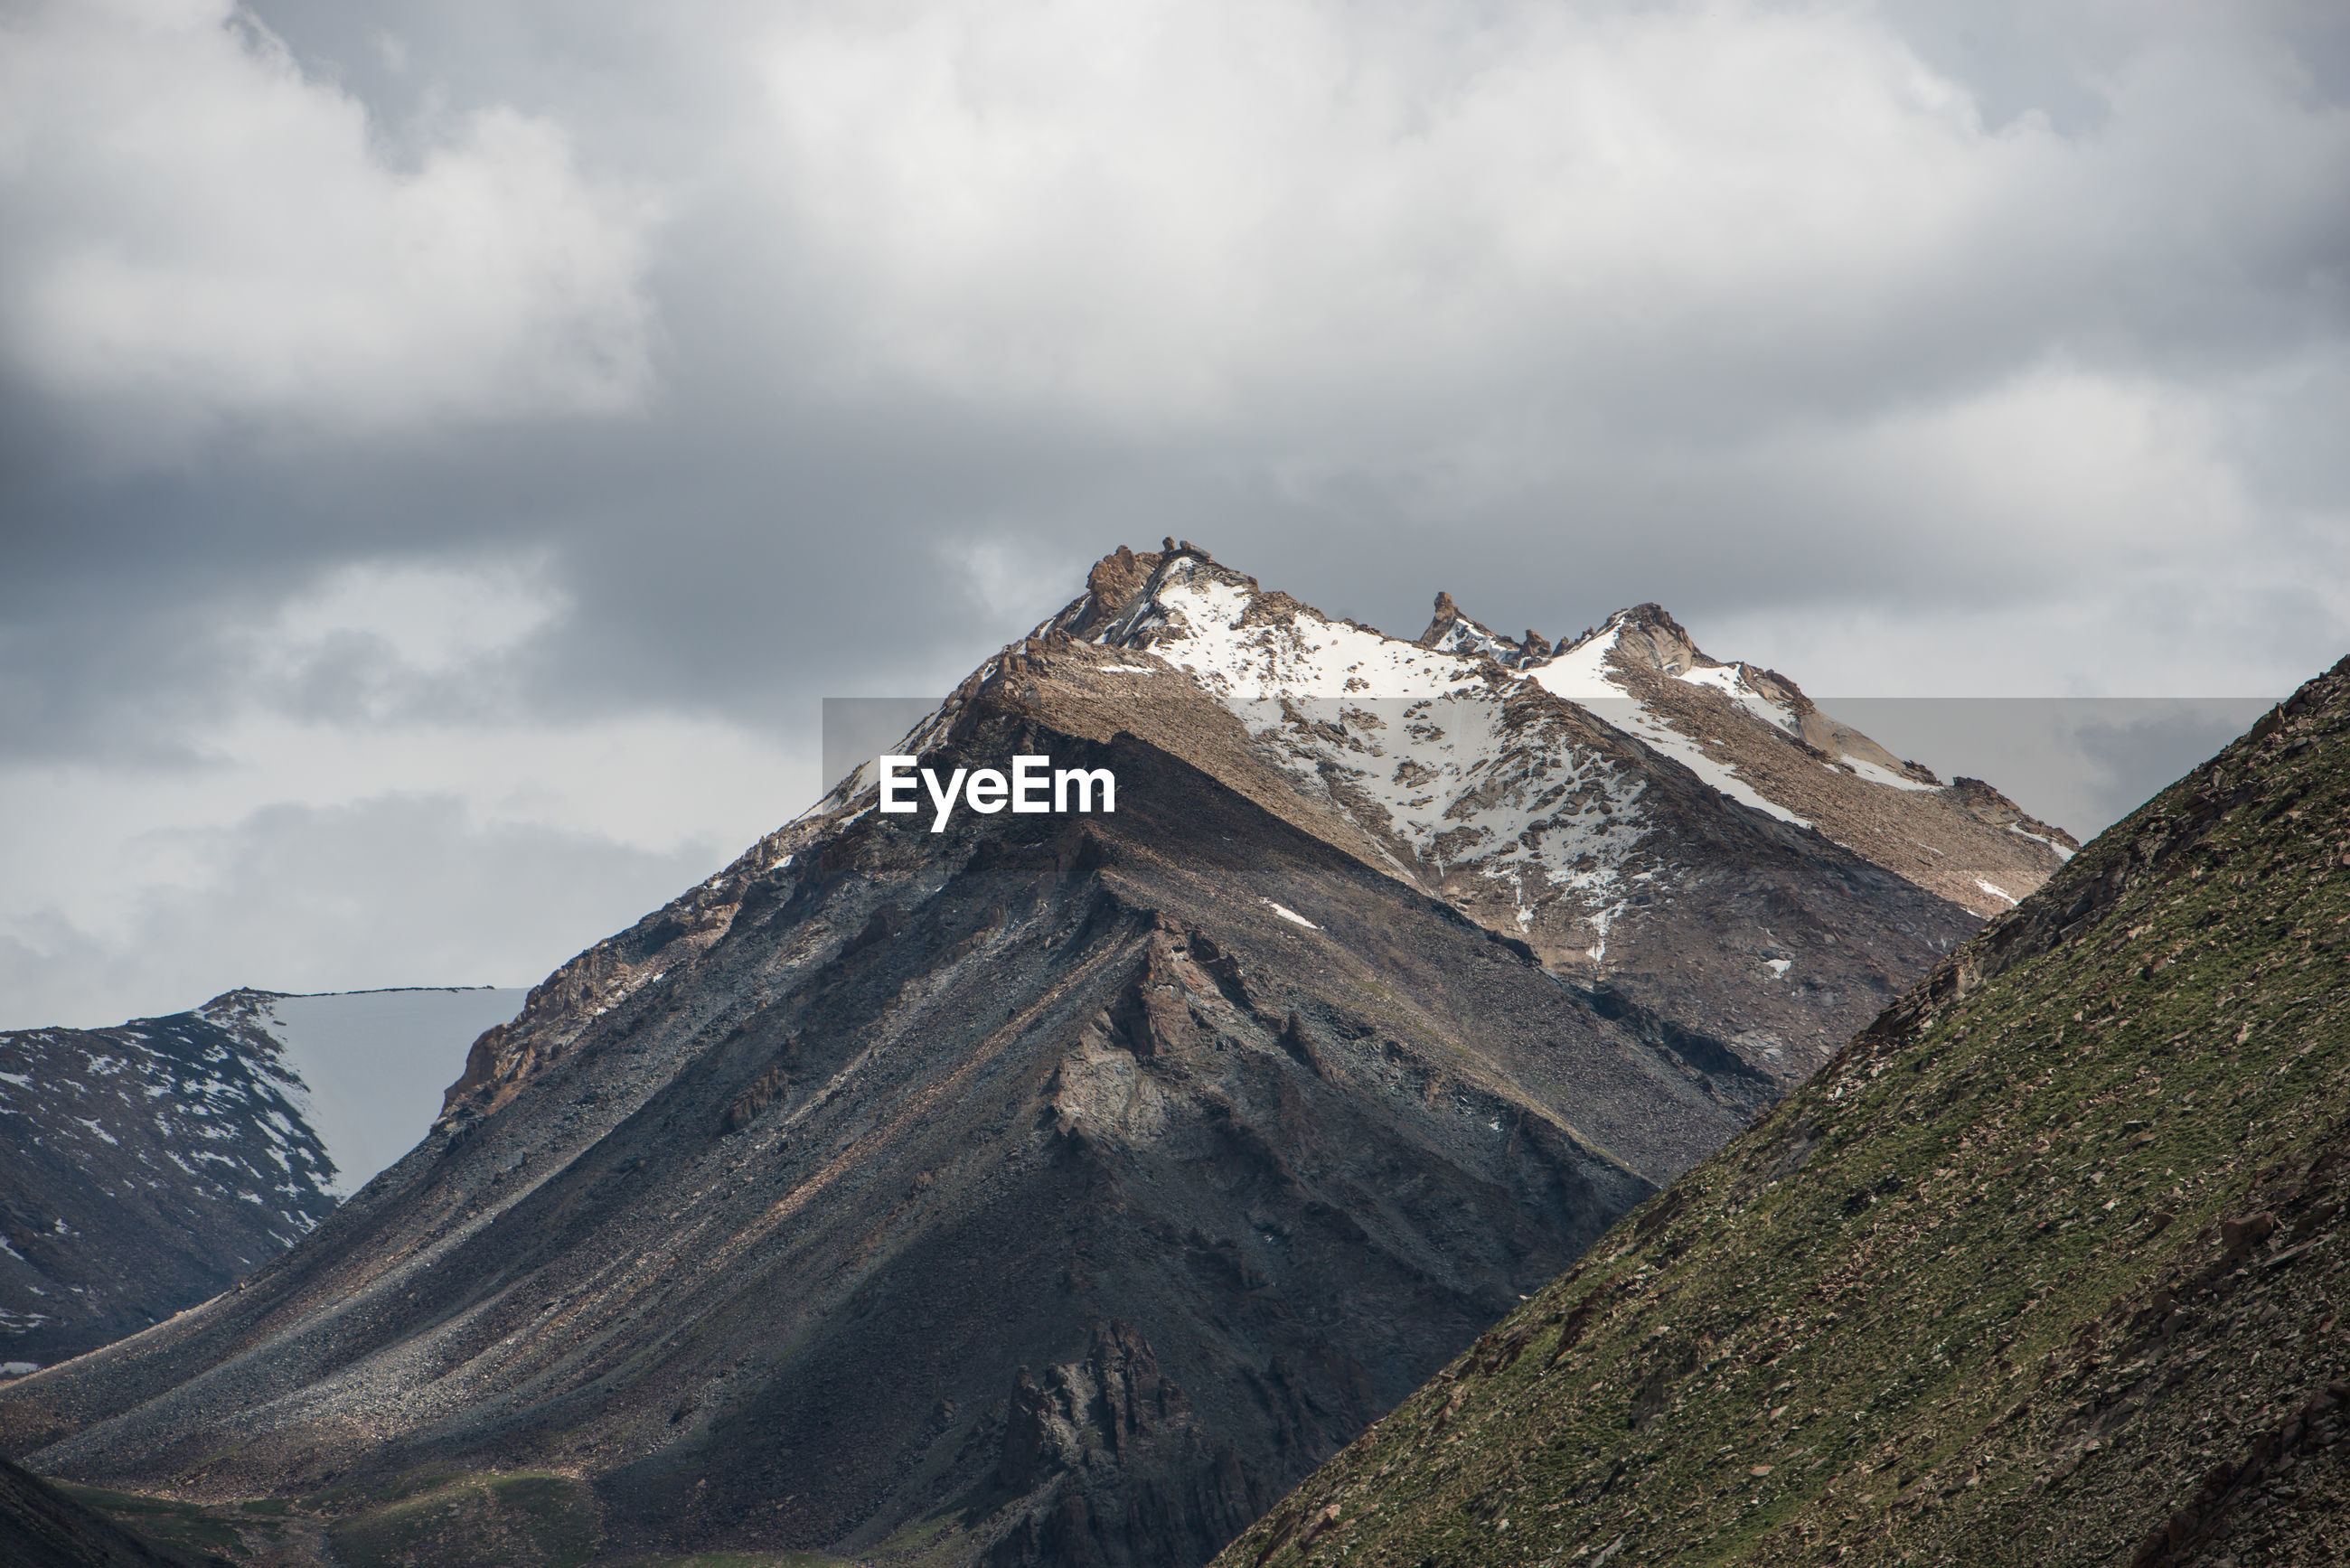 LOW ANGLE VIEW OF MAJESTIC MOUNTAIN RANGE AGAINST SKY